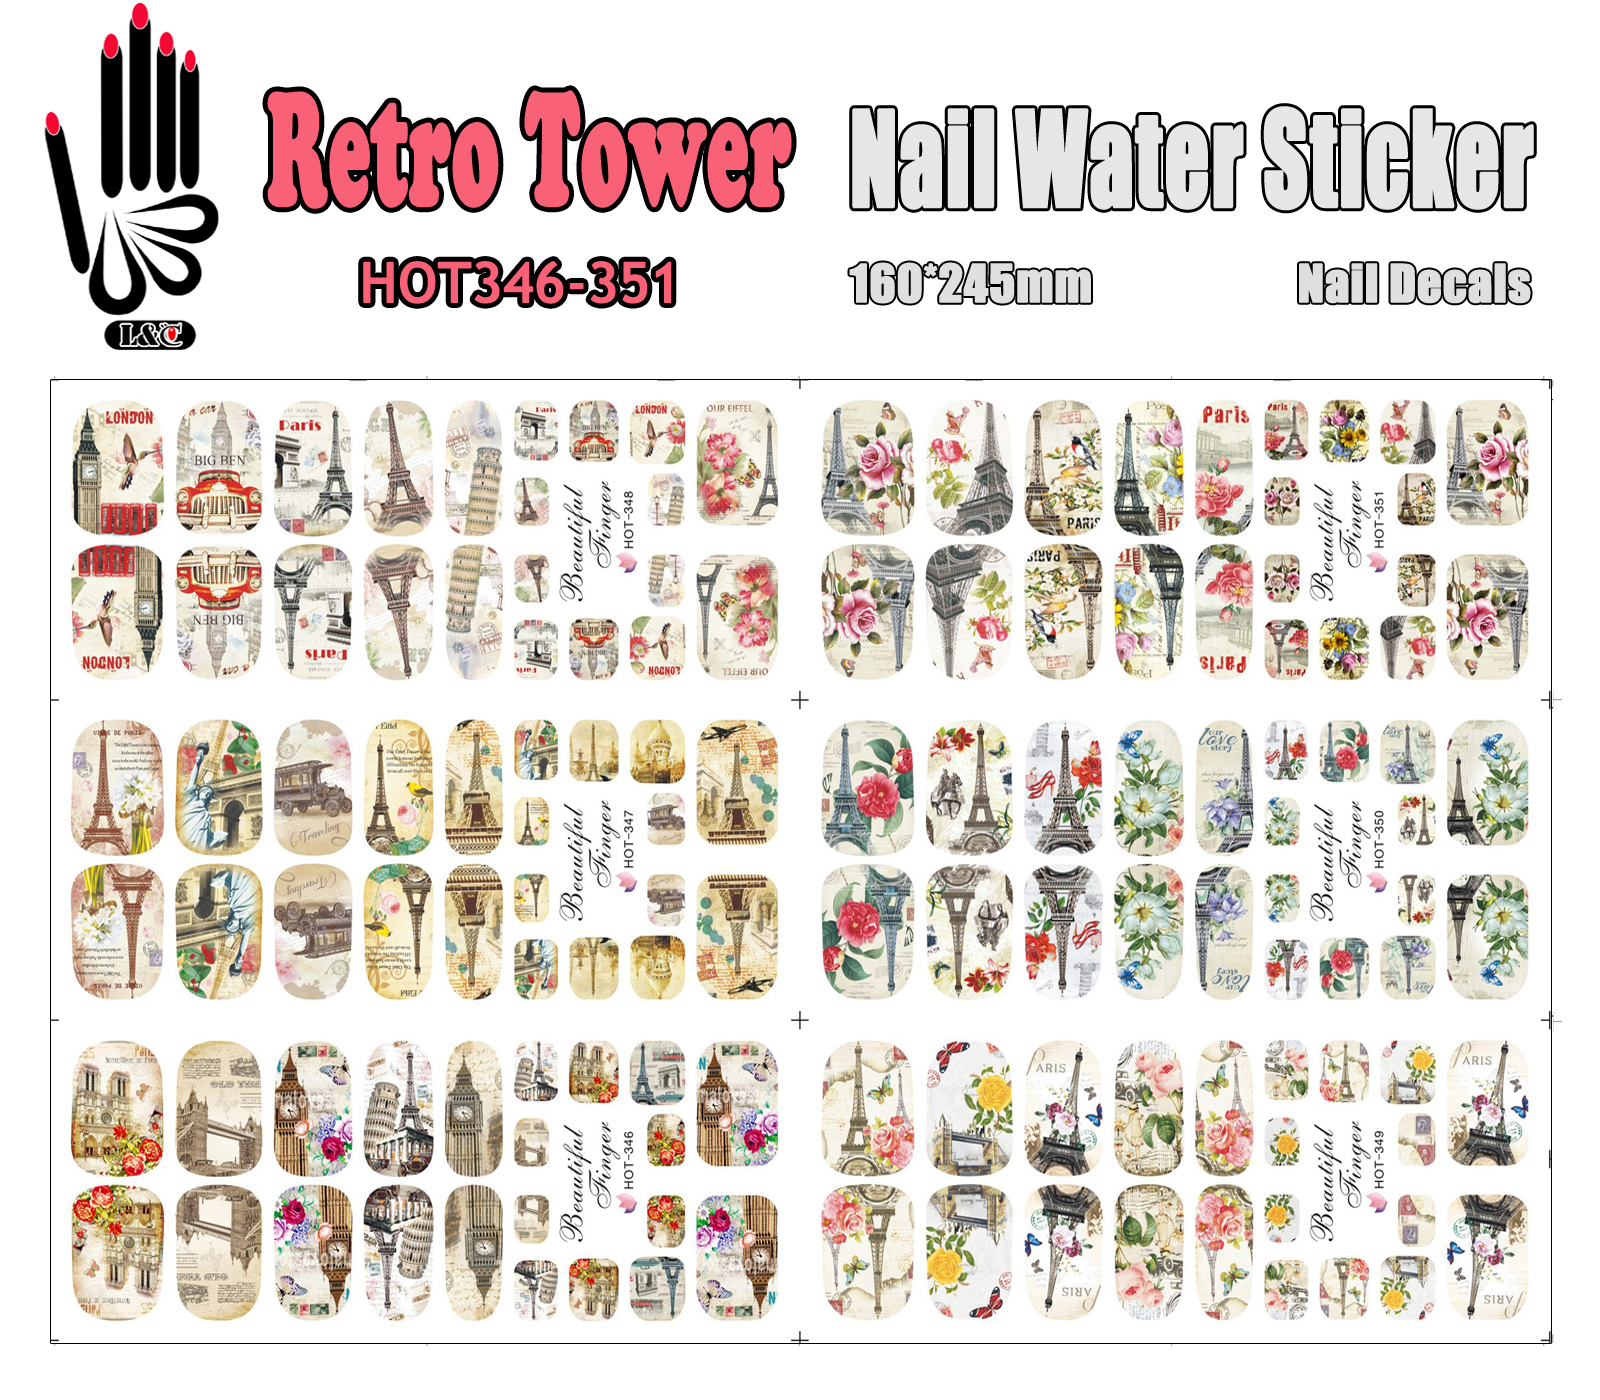 6 Sheets/Lot Art Nail HOT346-351 Retro Tower Full Cover Nail Film Nail Art Water Sticker Decal For Nail Art (6 DESIGNS IN 1) 4 packs lot full cover white french smile lace tattoos sticker water decal nail art d363 366w